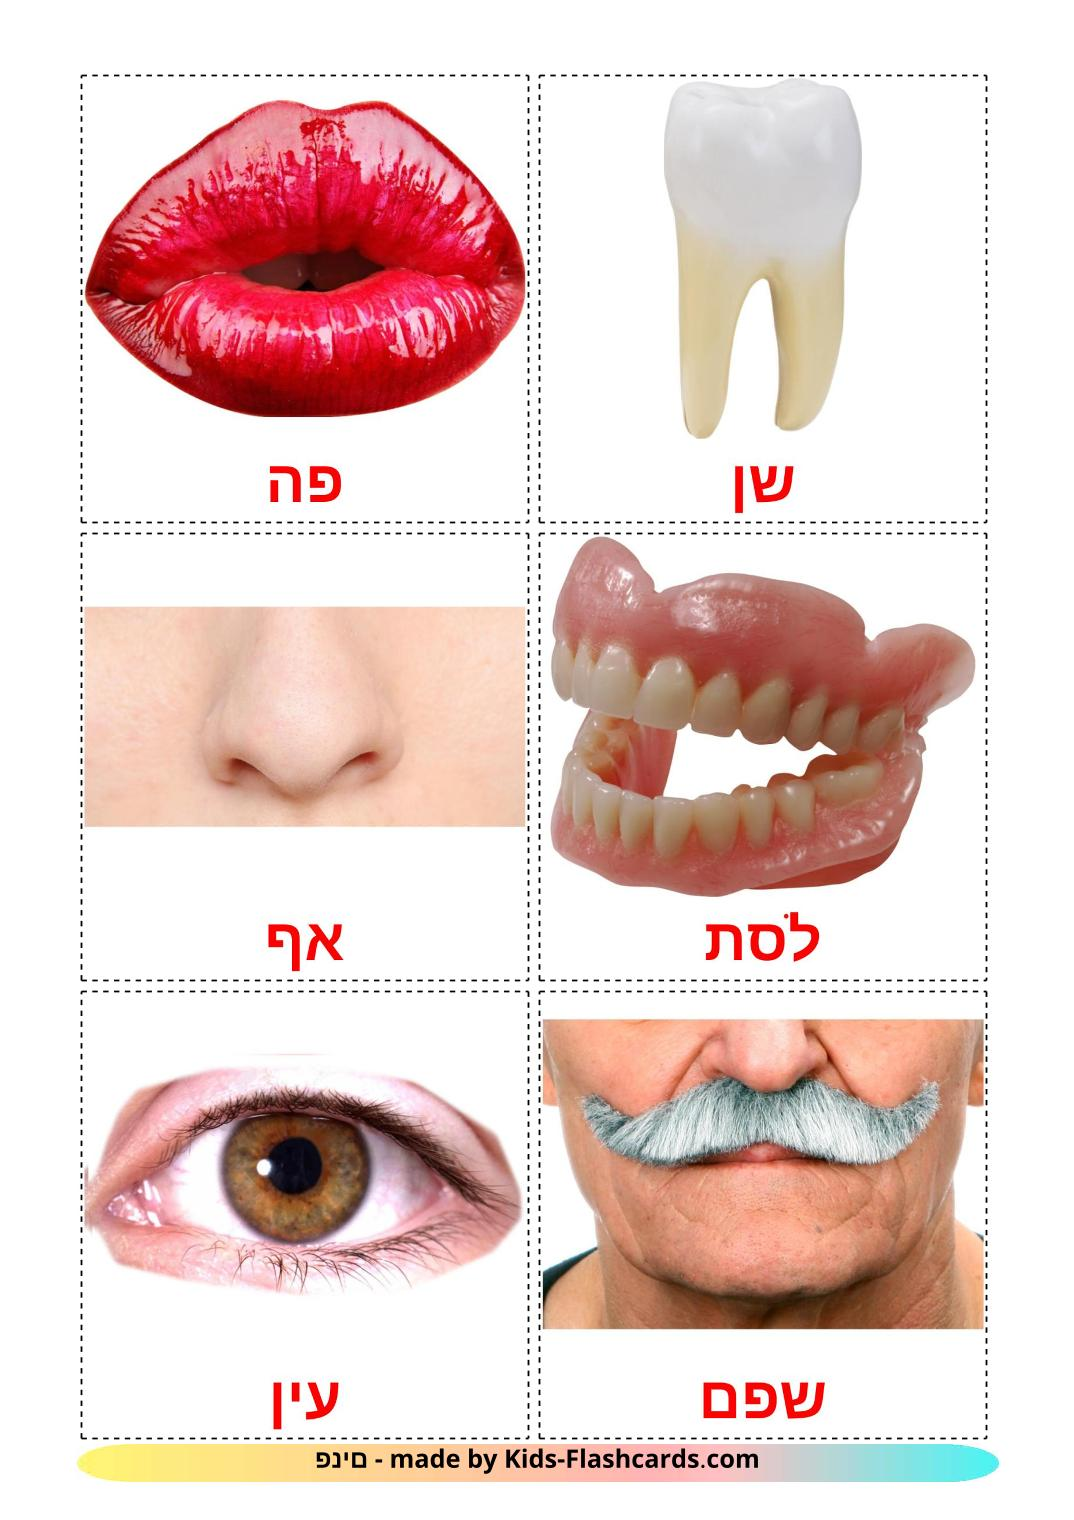 Face - 20 Free Printable hebrew Flashcards